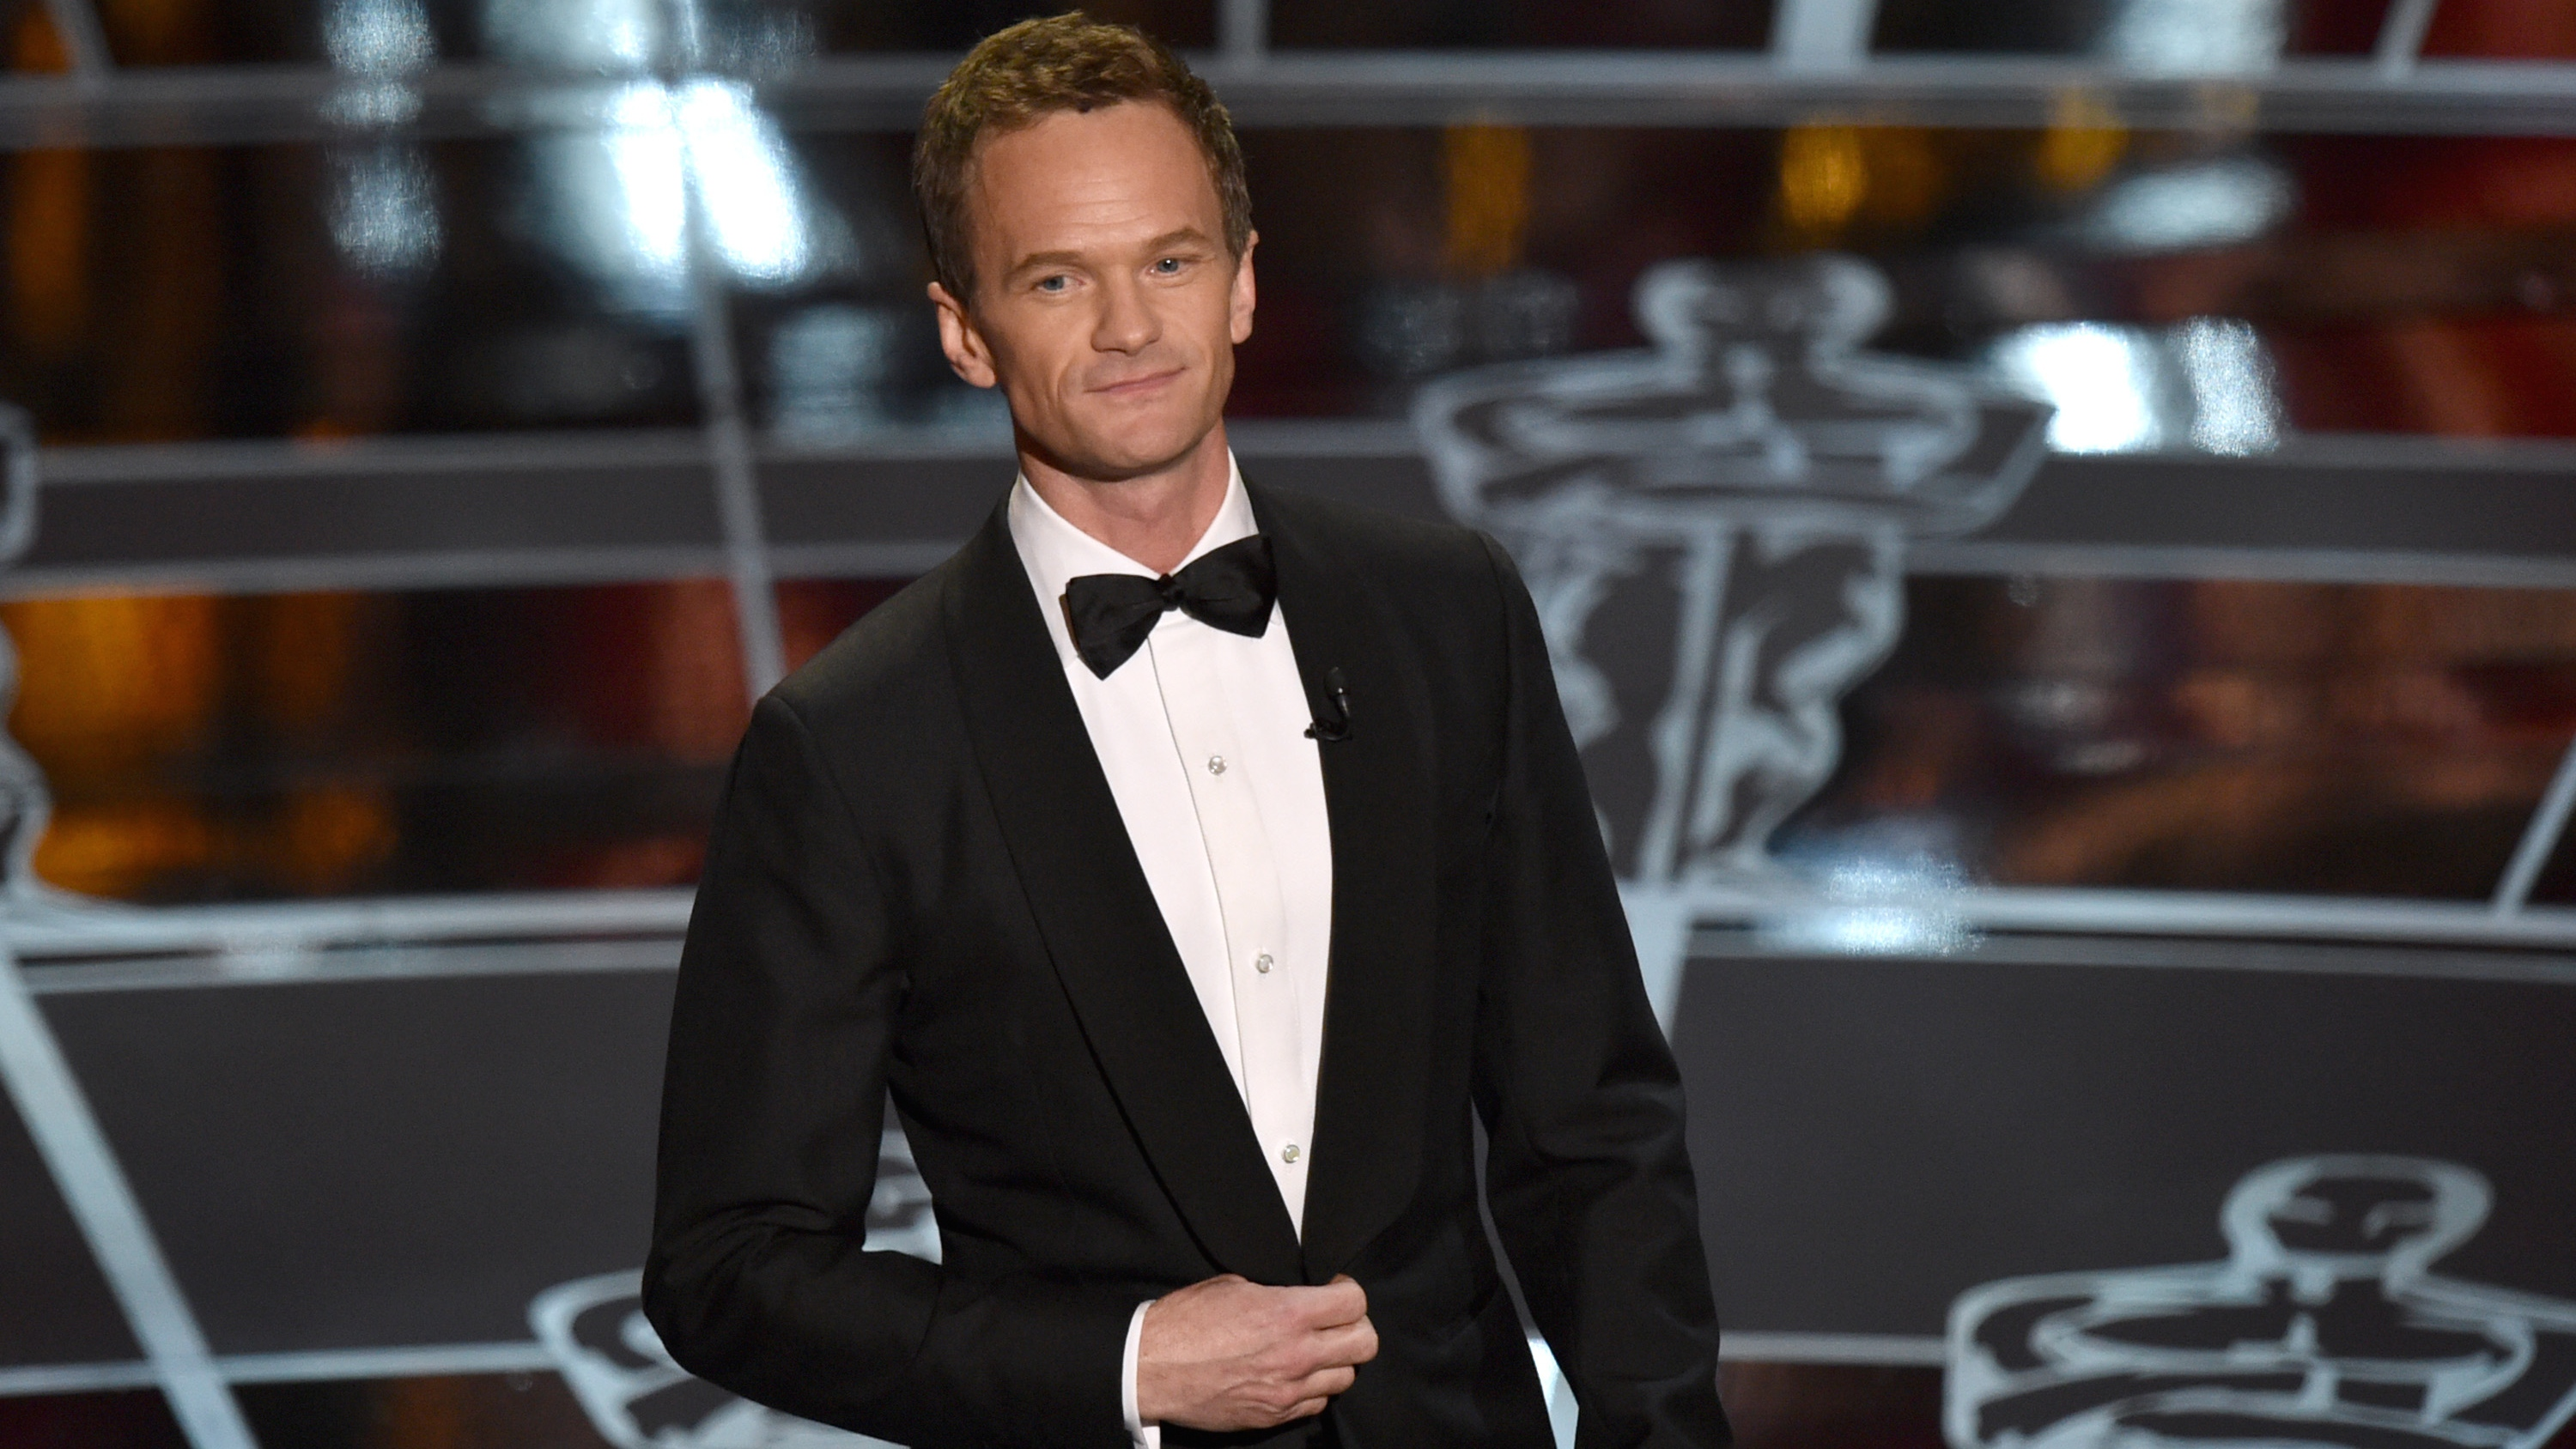 Neil Patrick Harris at the Oscars - H 2015